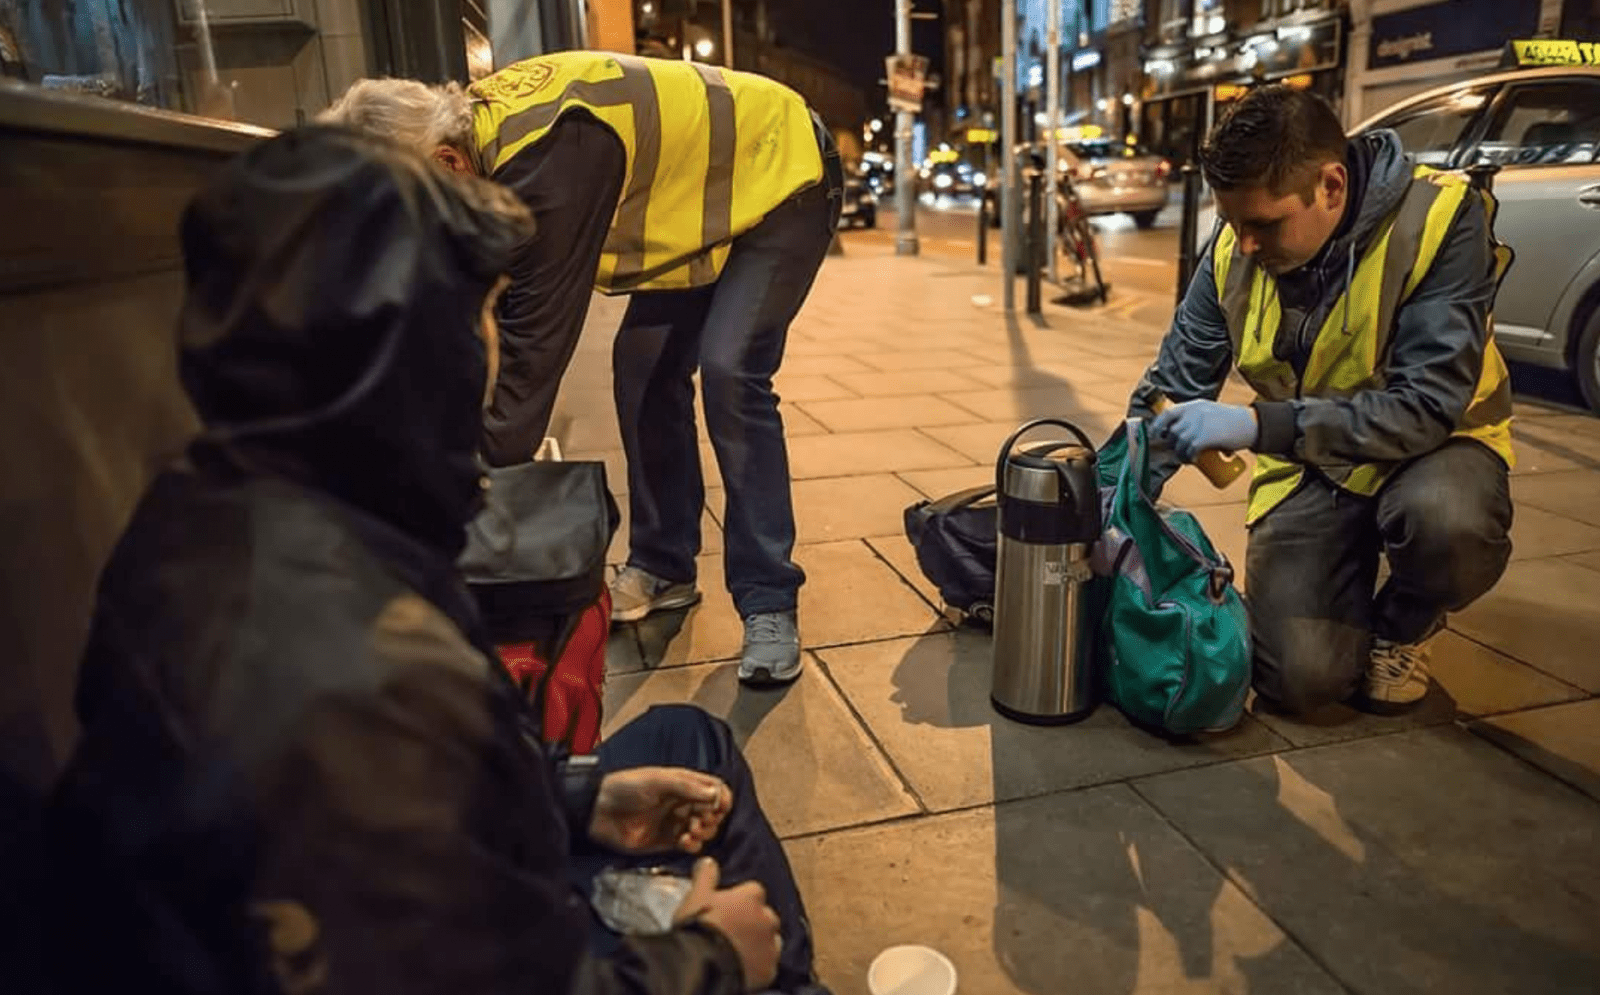 STAND News talks to ICHH on how COVID-19 is affecting the homeless population